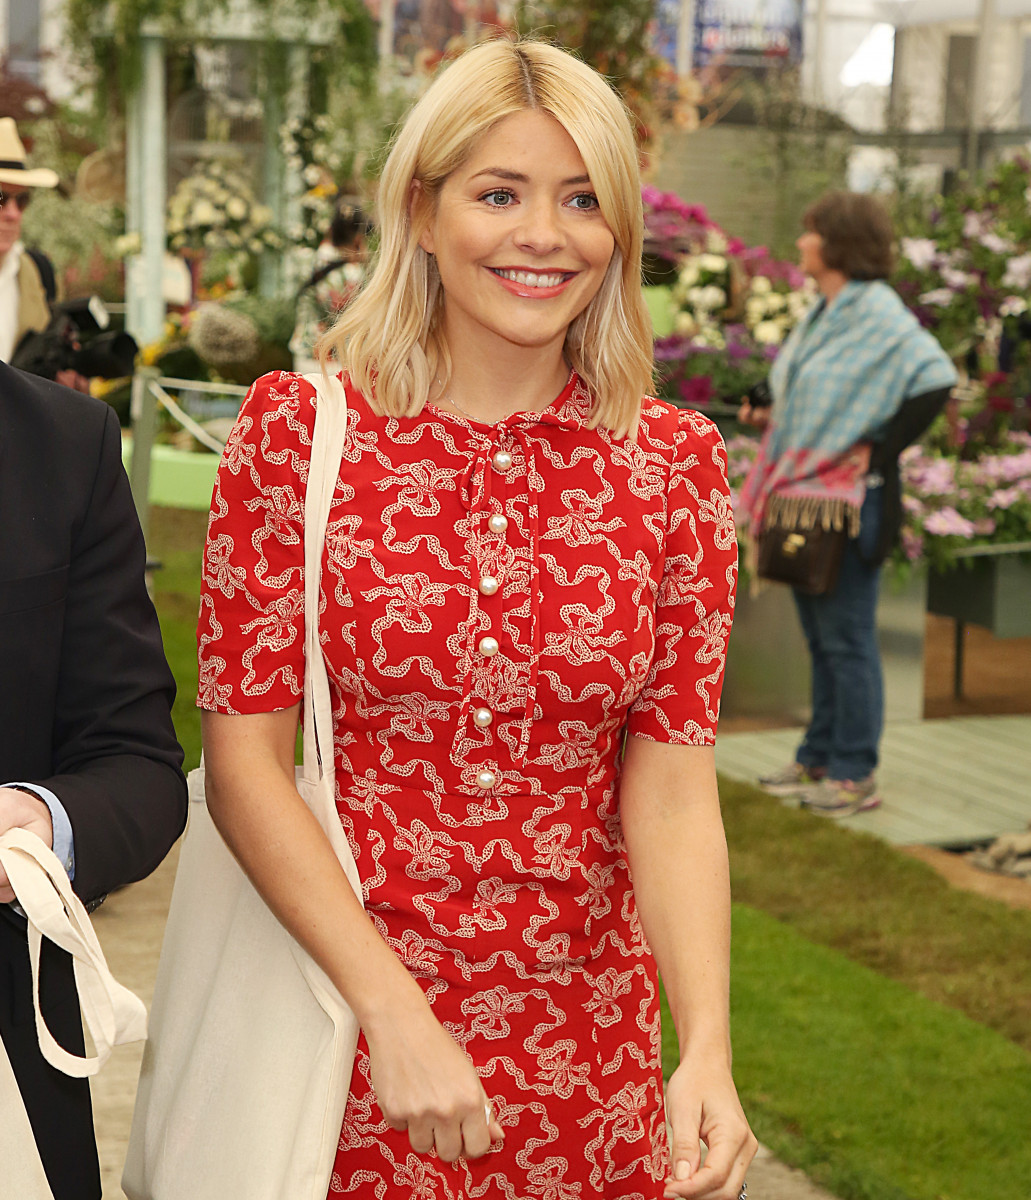 Holly Willoughby, The RHS Chelsea Flower Show 2018 - Press Day, London UK, 21 May 2018